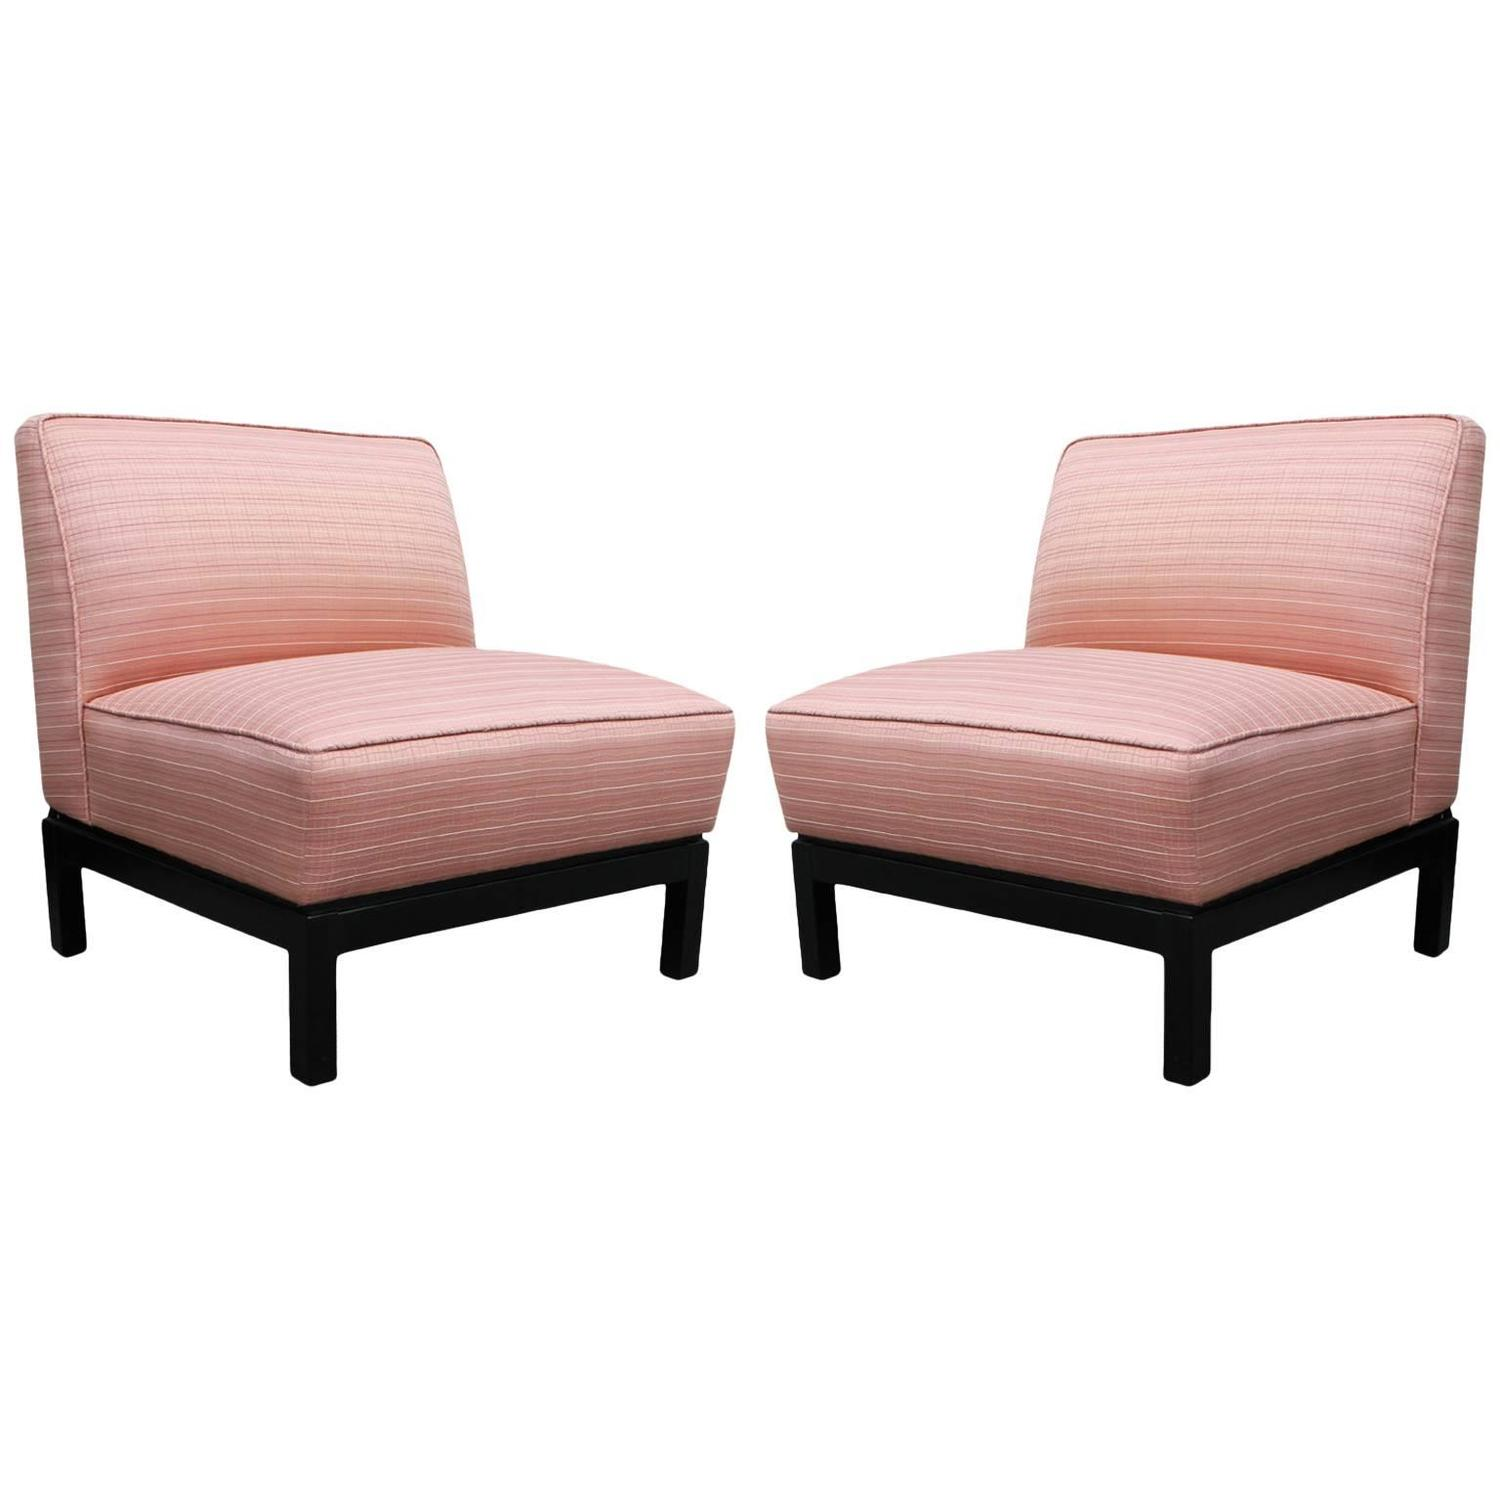 Pair of Clean Lined Modern Slipper Chairs in Light Pink with Deep